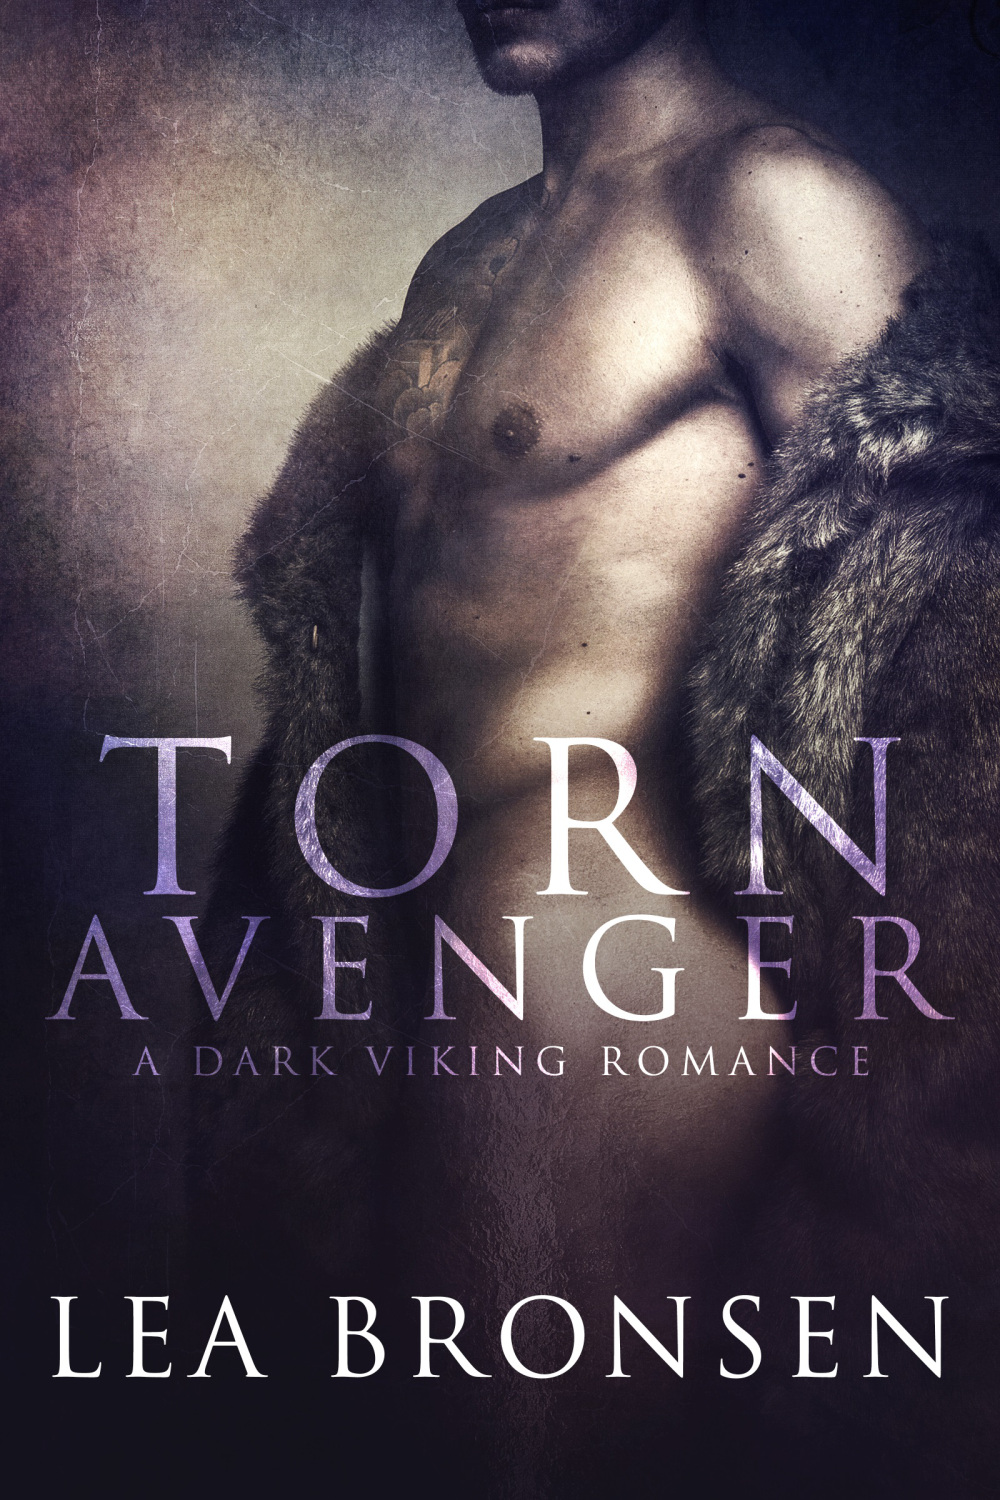 A world of ruthless retaliation and strict social codes @LeaBronsen #Viking #darkromance